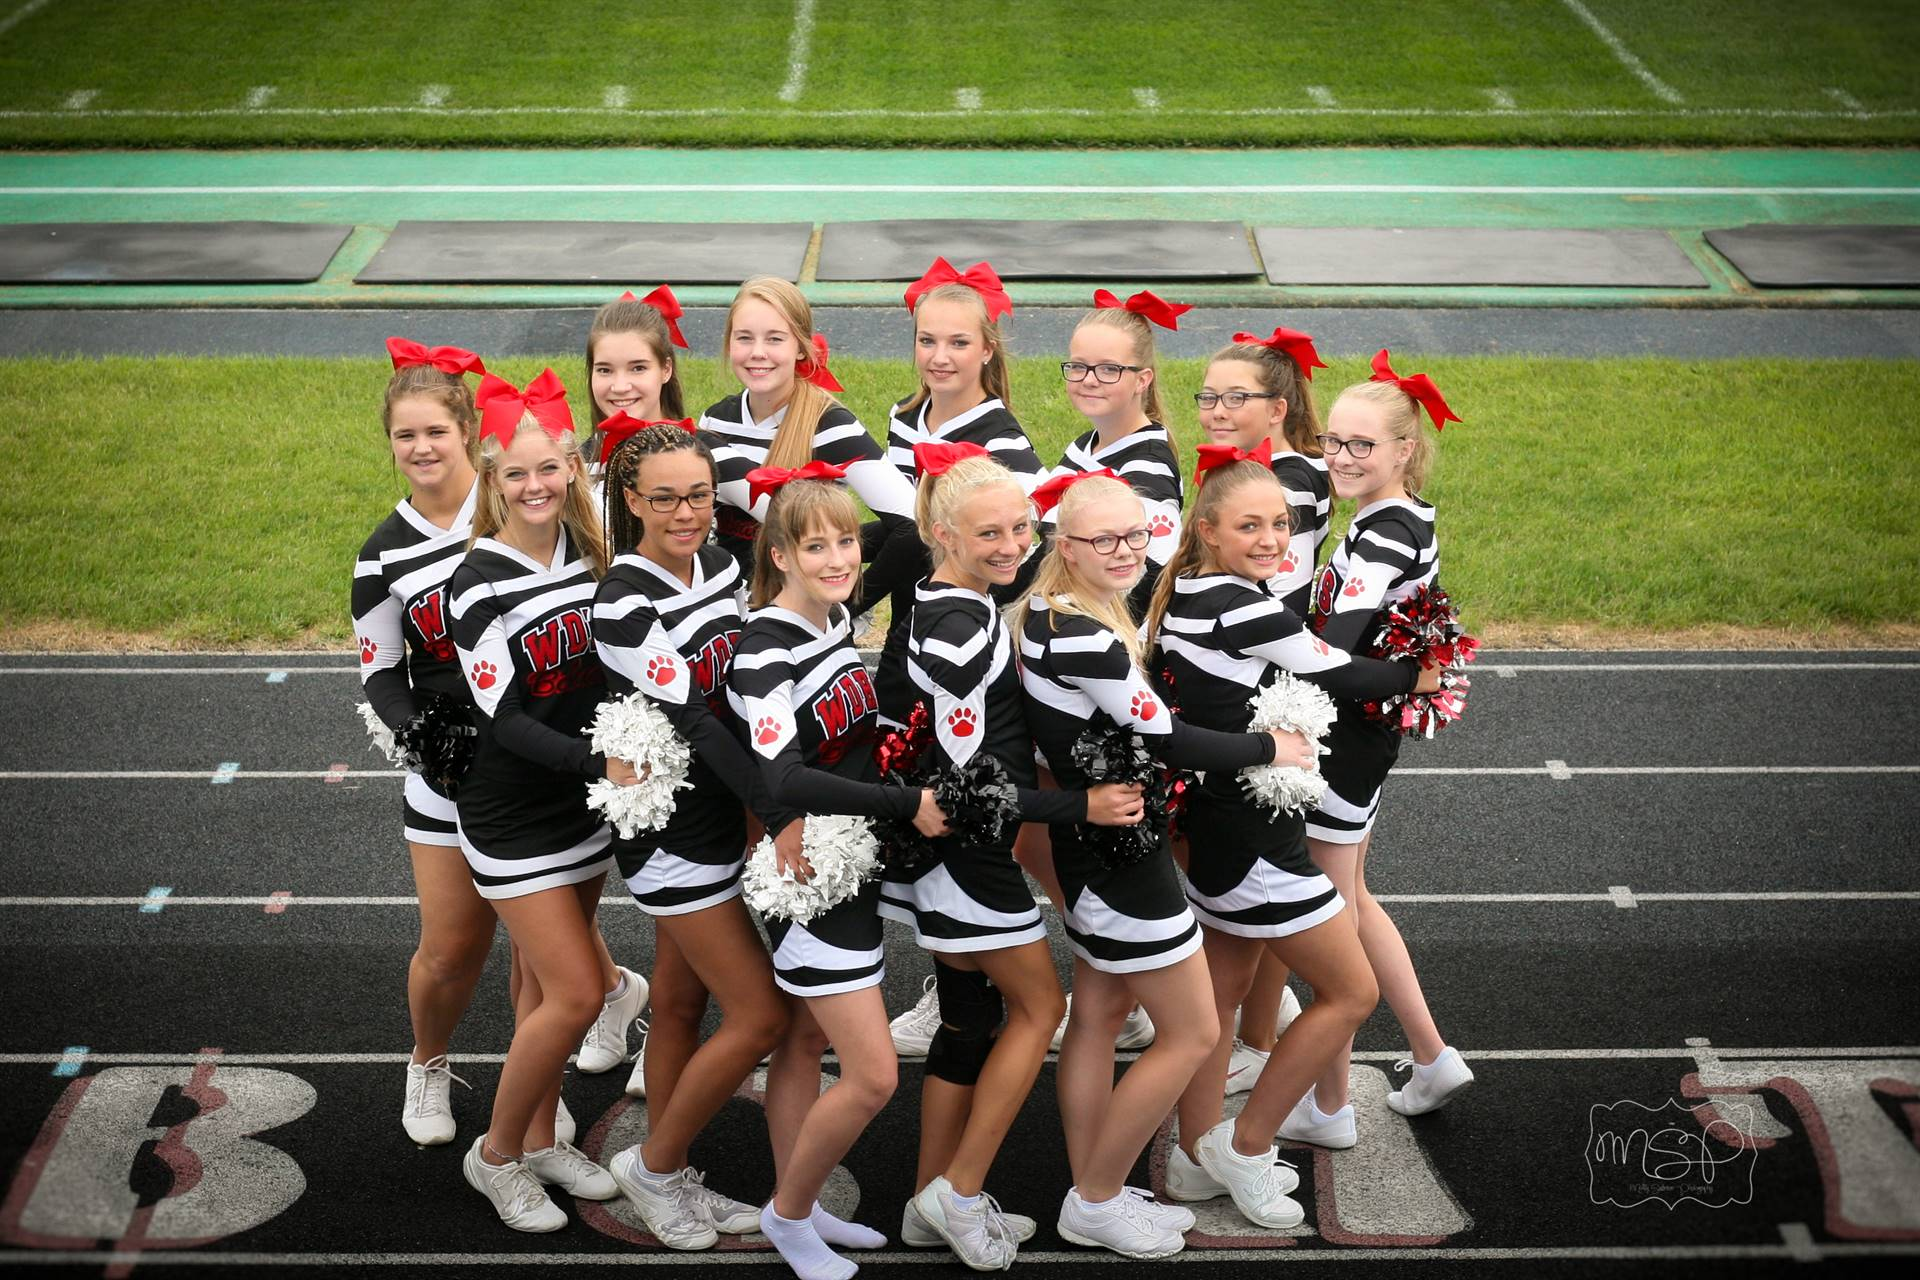 2018 Football Cheerleaders